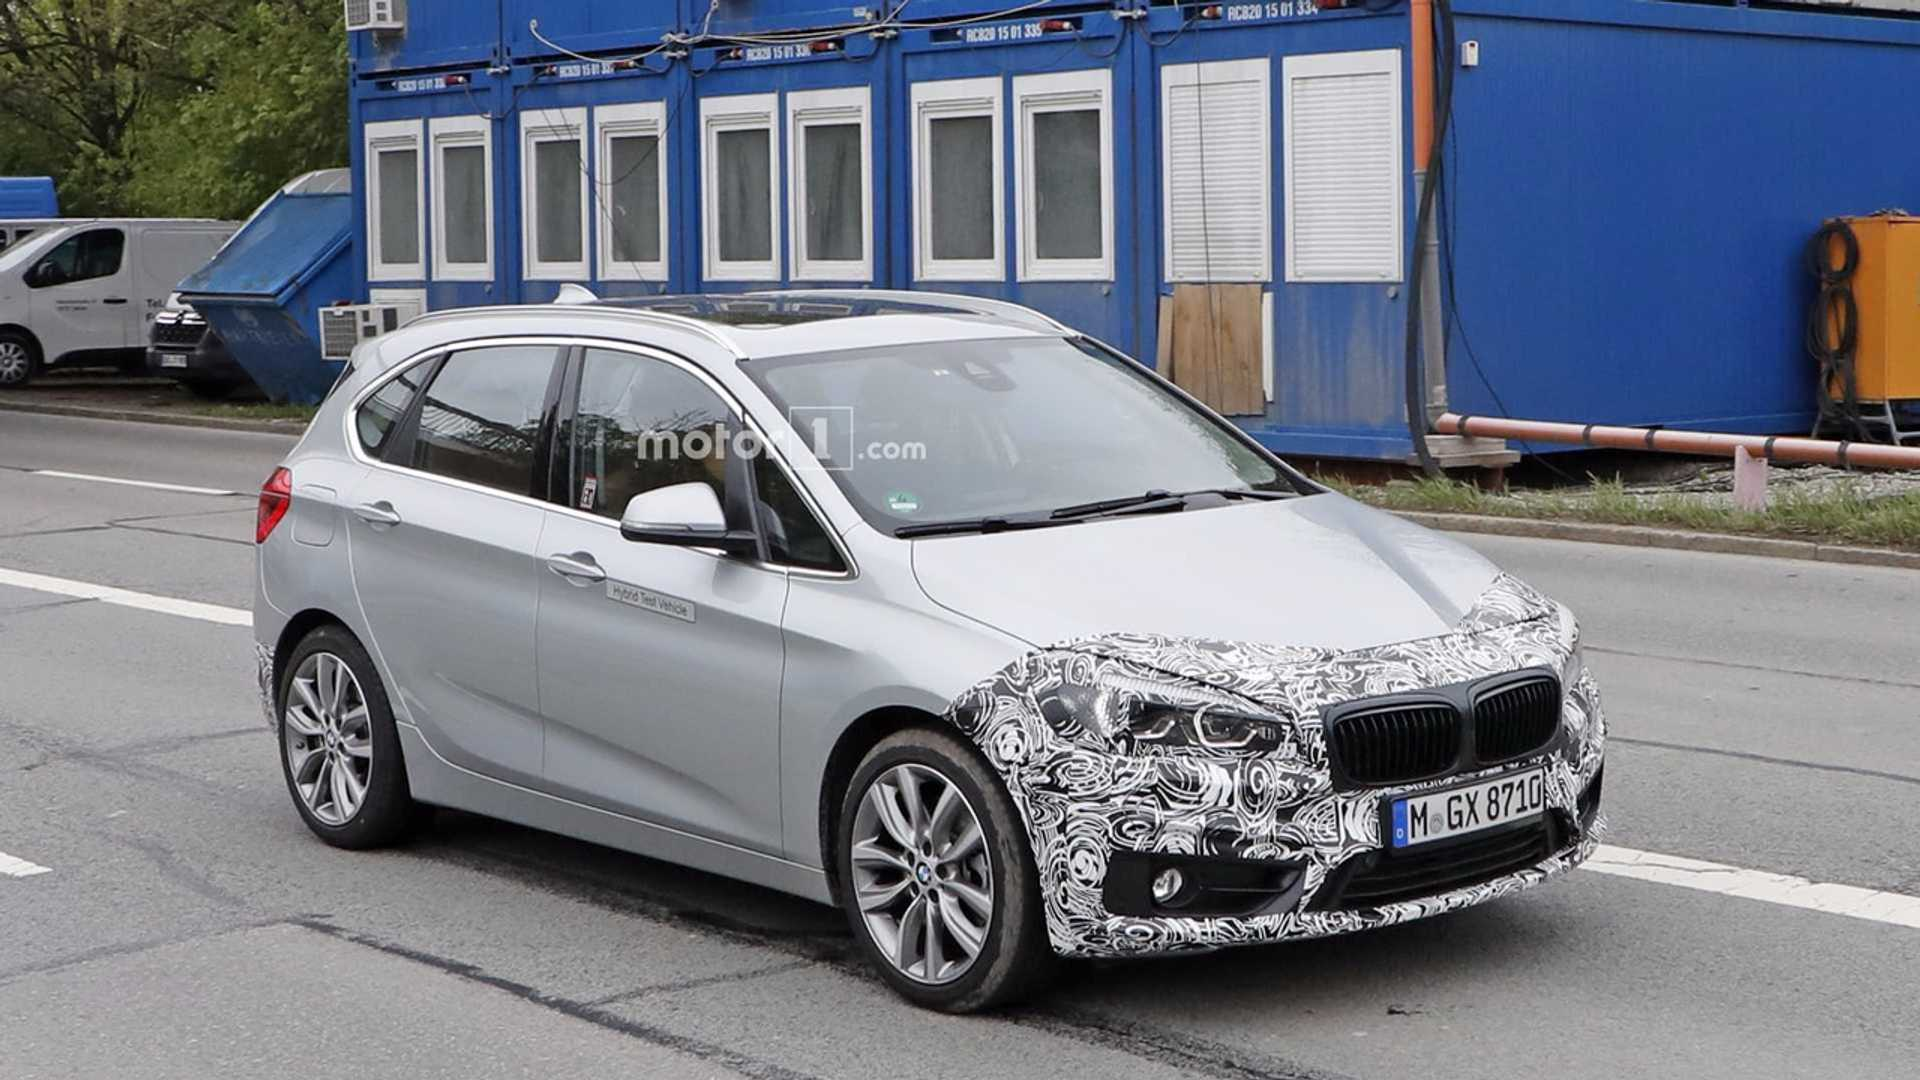 Spy Shots Show Updated Bmw 225xe Active Tourer Plug In Hybrid